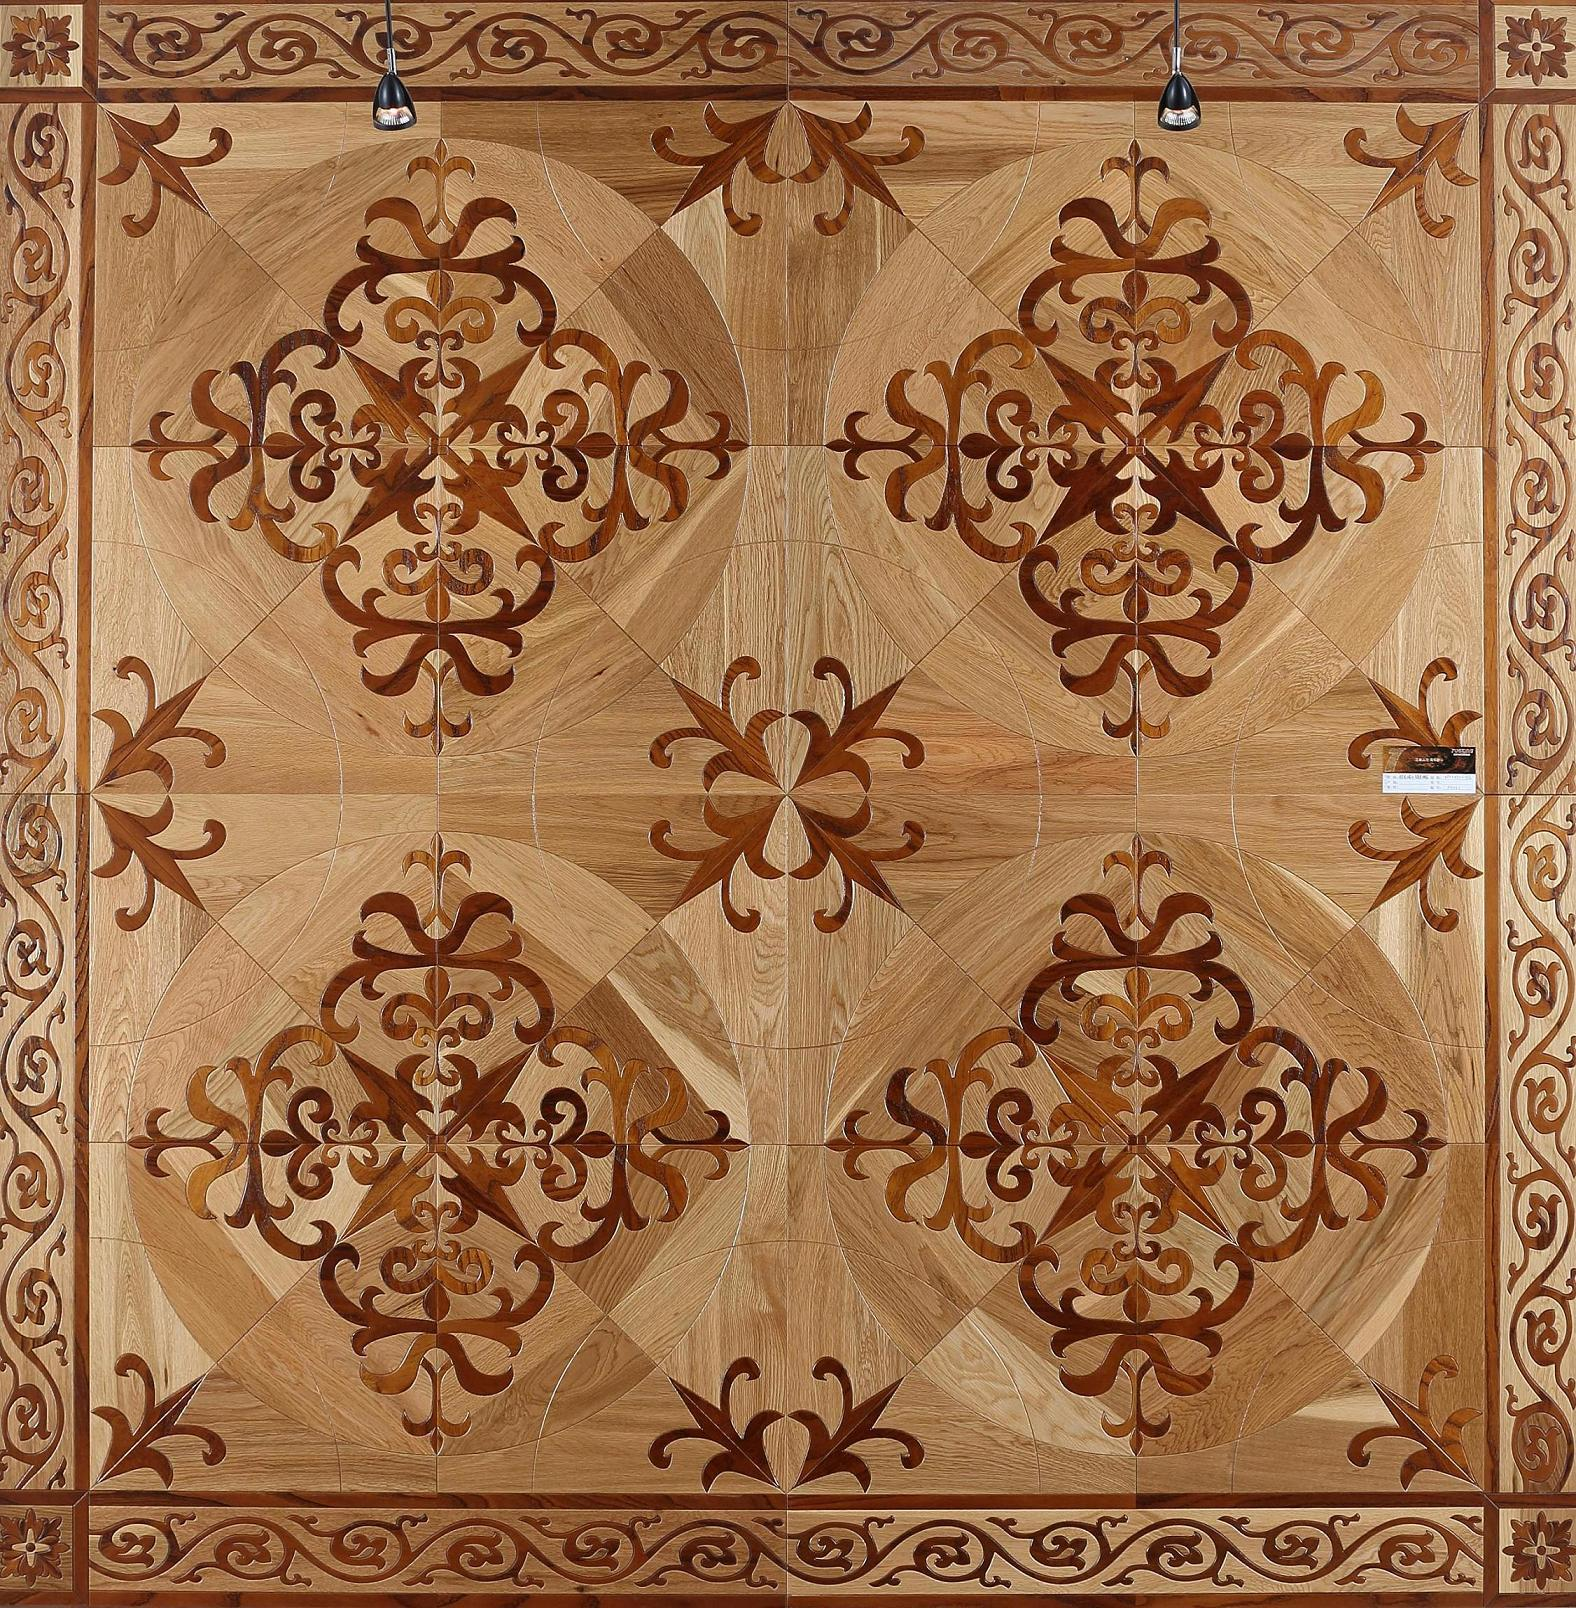 Flower pattern art parquet wood flooring tiles asian pear sapele flower pattern art parquet wood flooring tiles asian pear sapele wood floor wood wax wood floor russia oak wood floor wings wood flooring hardwood flooring dailygadgetfo Choice Image